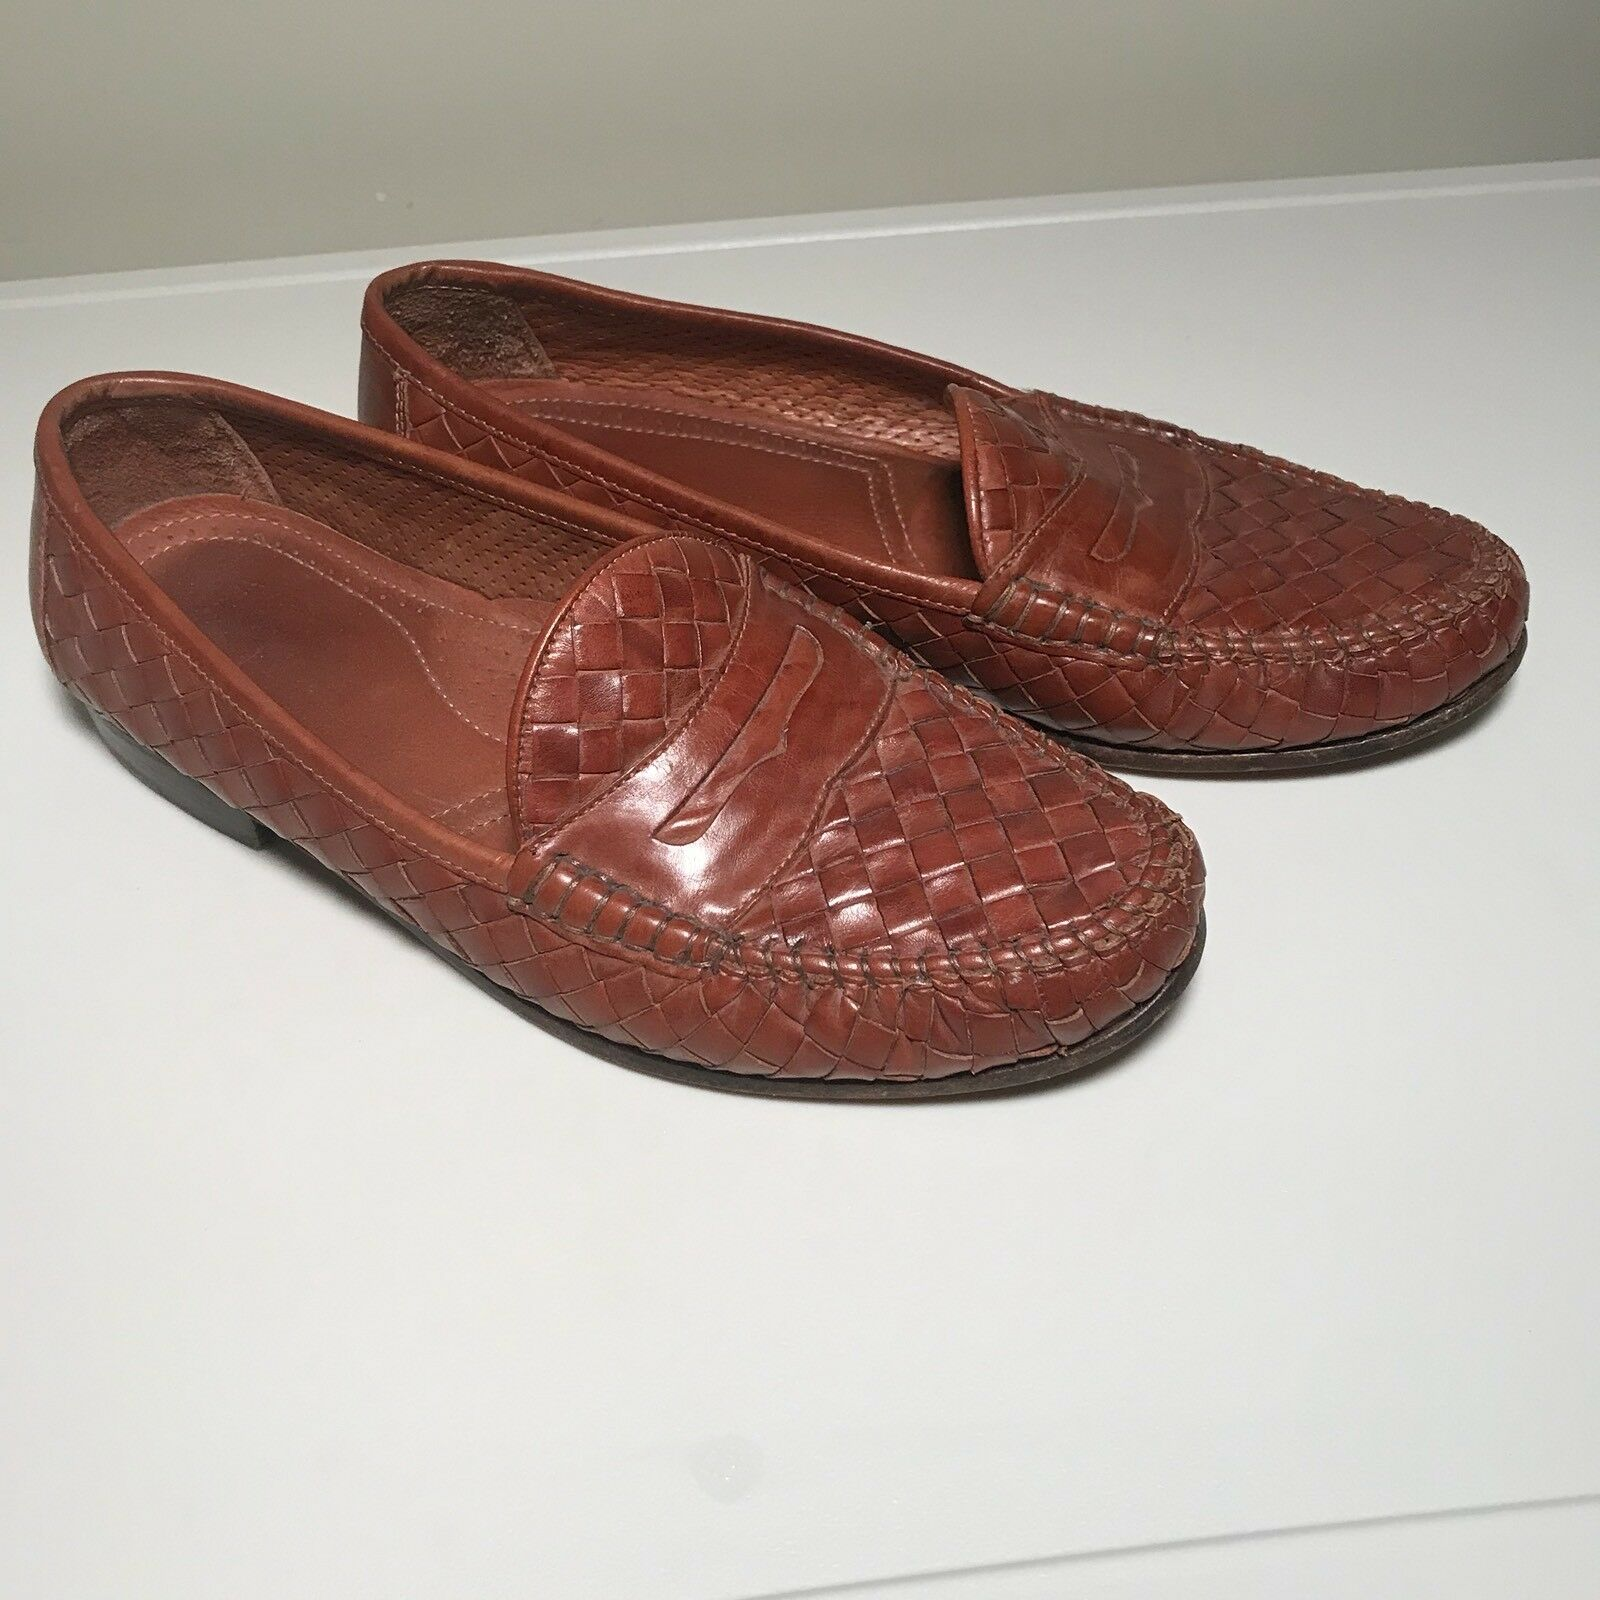 ALLEN EDMONDS ST LUCIA Brown Leather Penny Loafers shoes Moccasins Mens Size 8EE